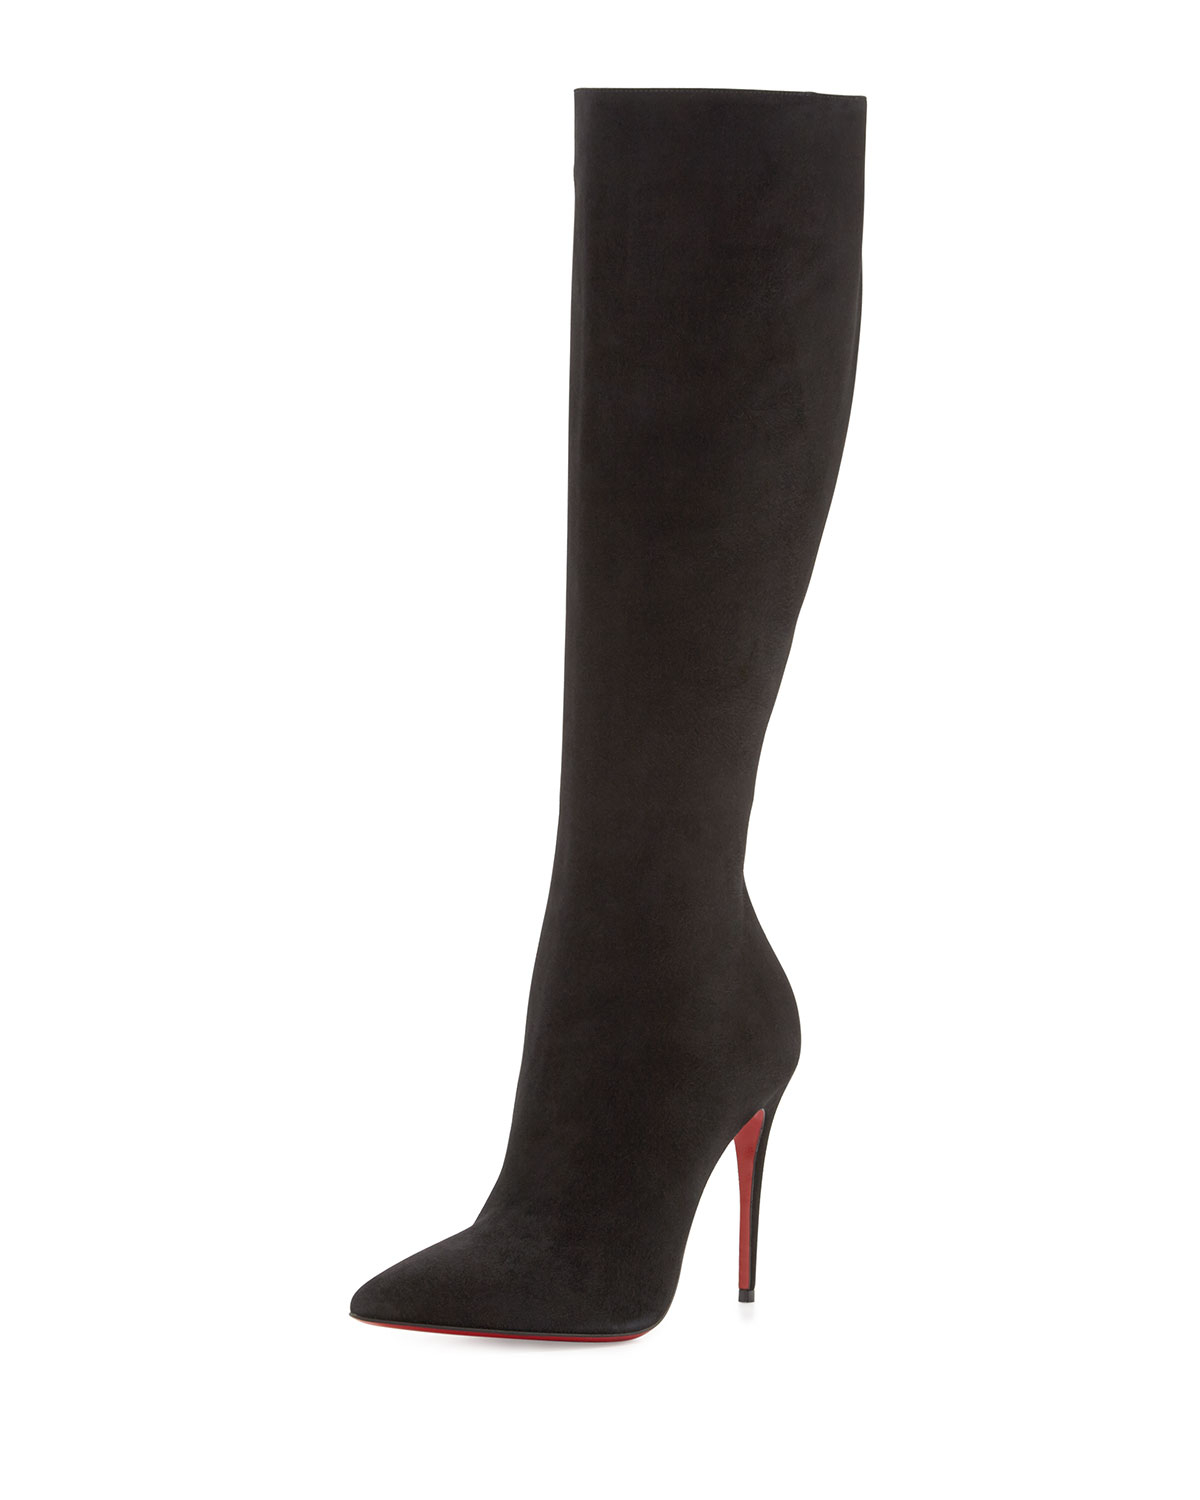 Christian Louboutin Pointed-Toe Knee-High Boots shop for sale 100% authentic online cheap sale cheapest price 98S9Yzon